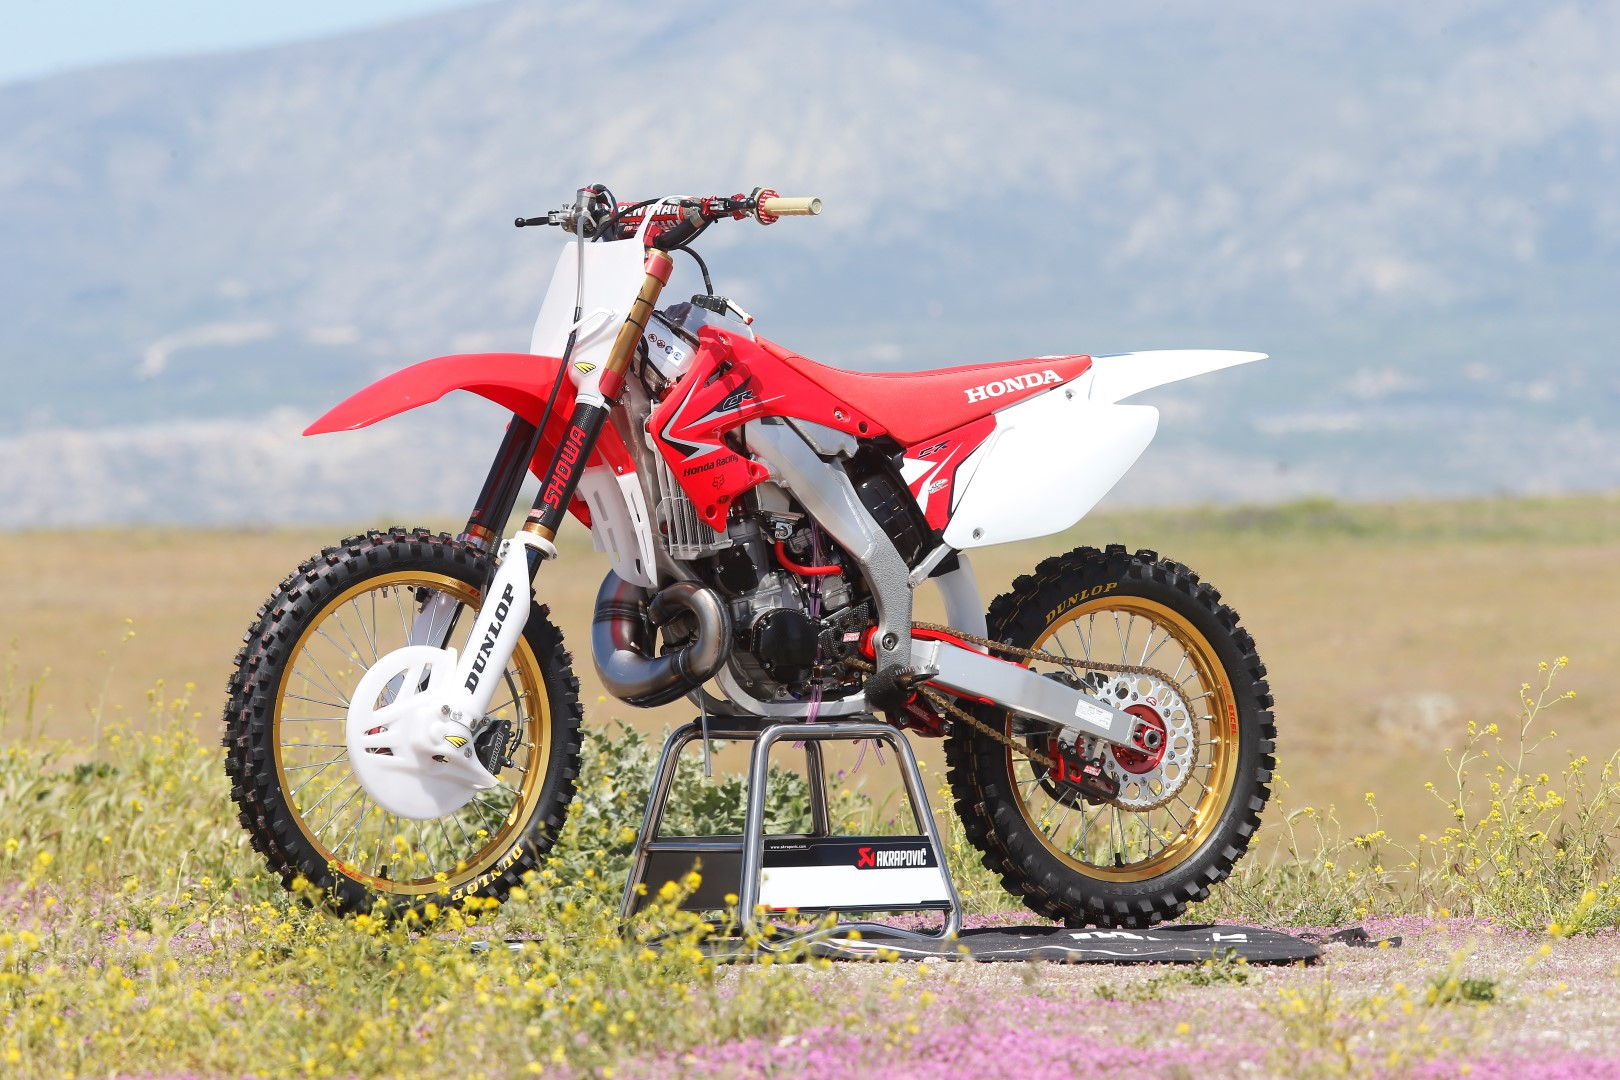 ¡50.000 euros! Honda CR 250 Factory